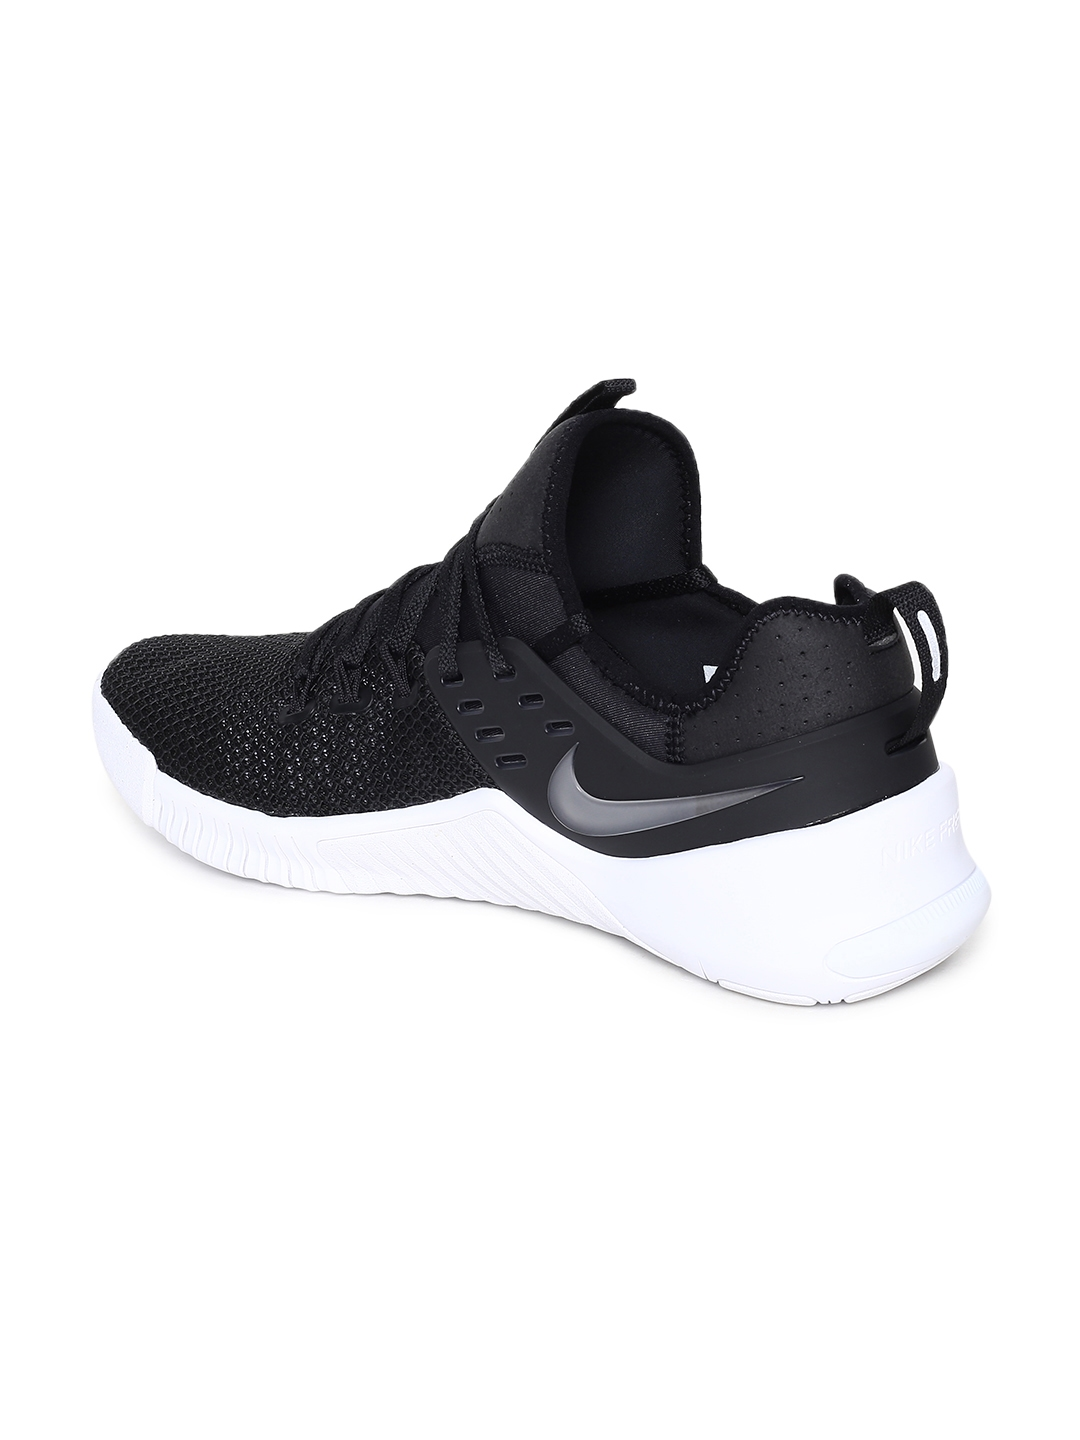 super popular ee5ed 47abc Nike Men Black Free Metcon Training or Gym Shoes